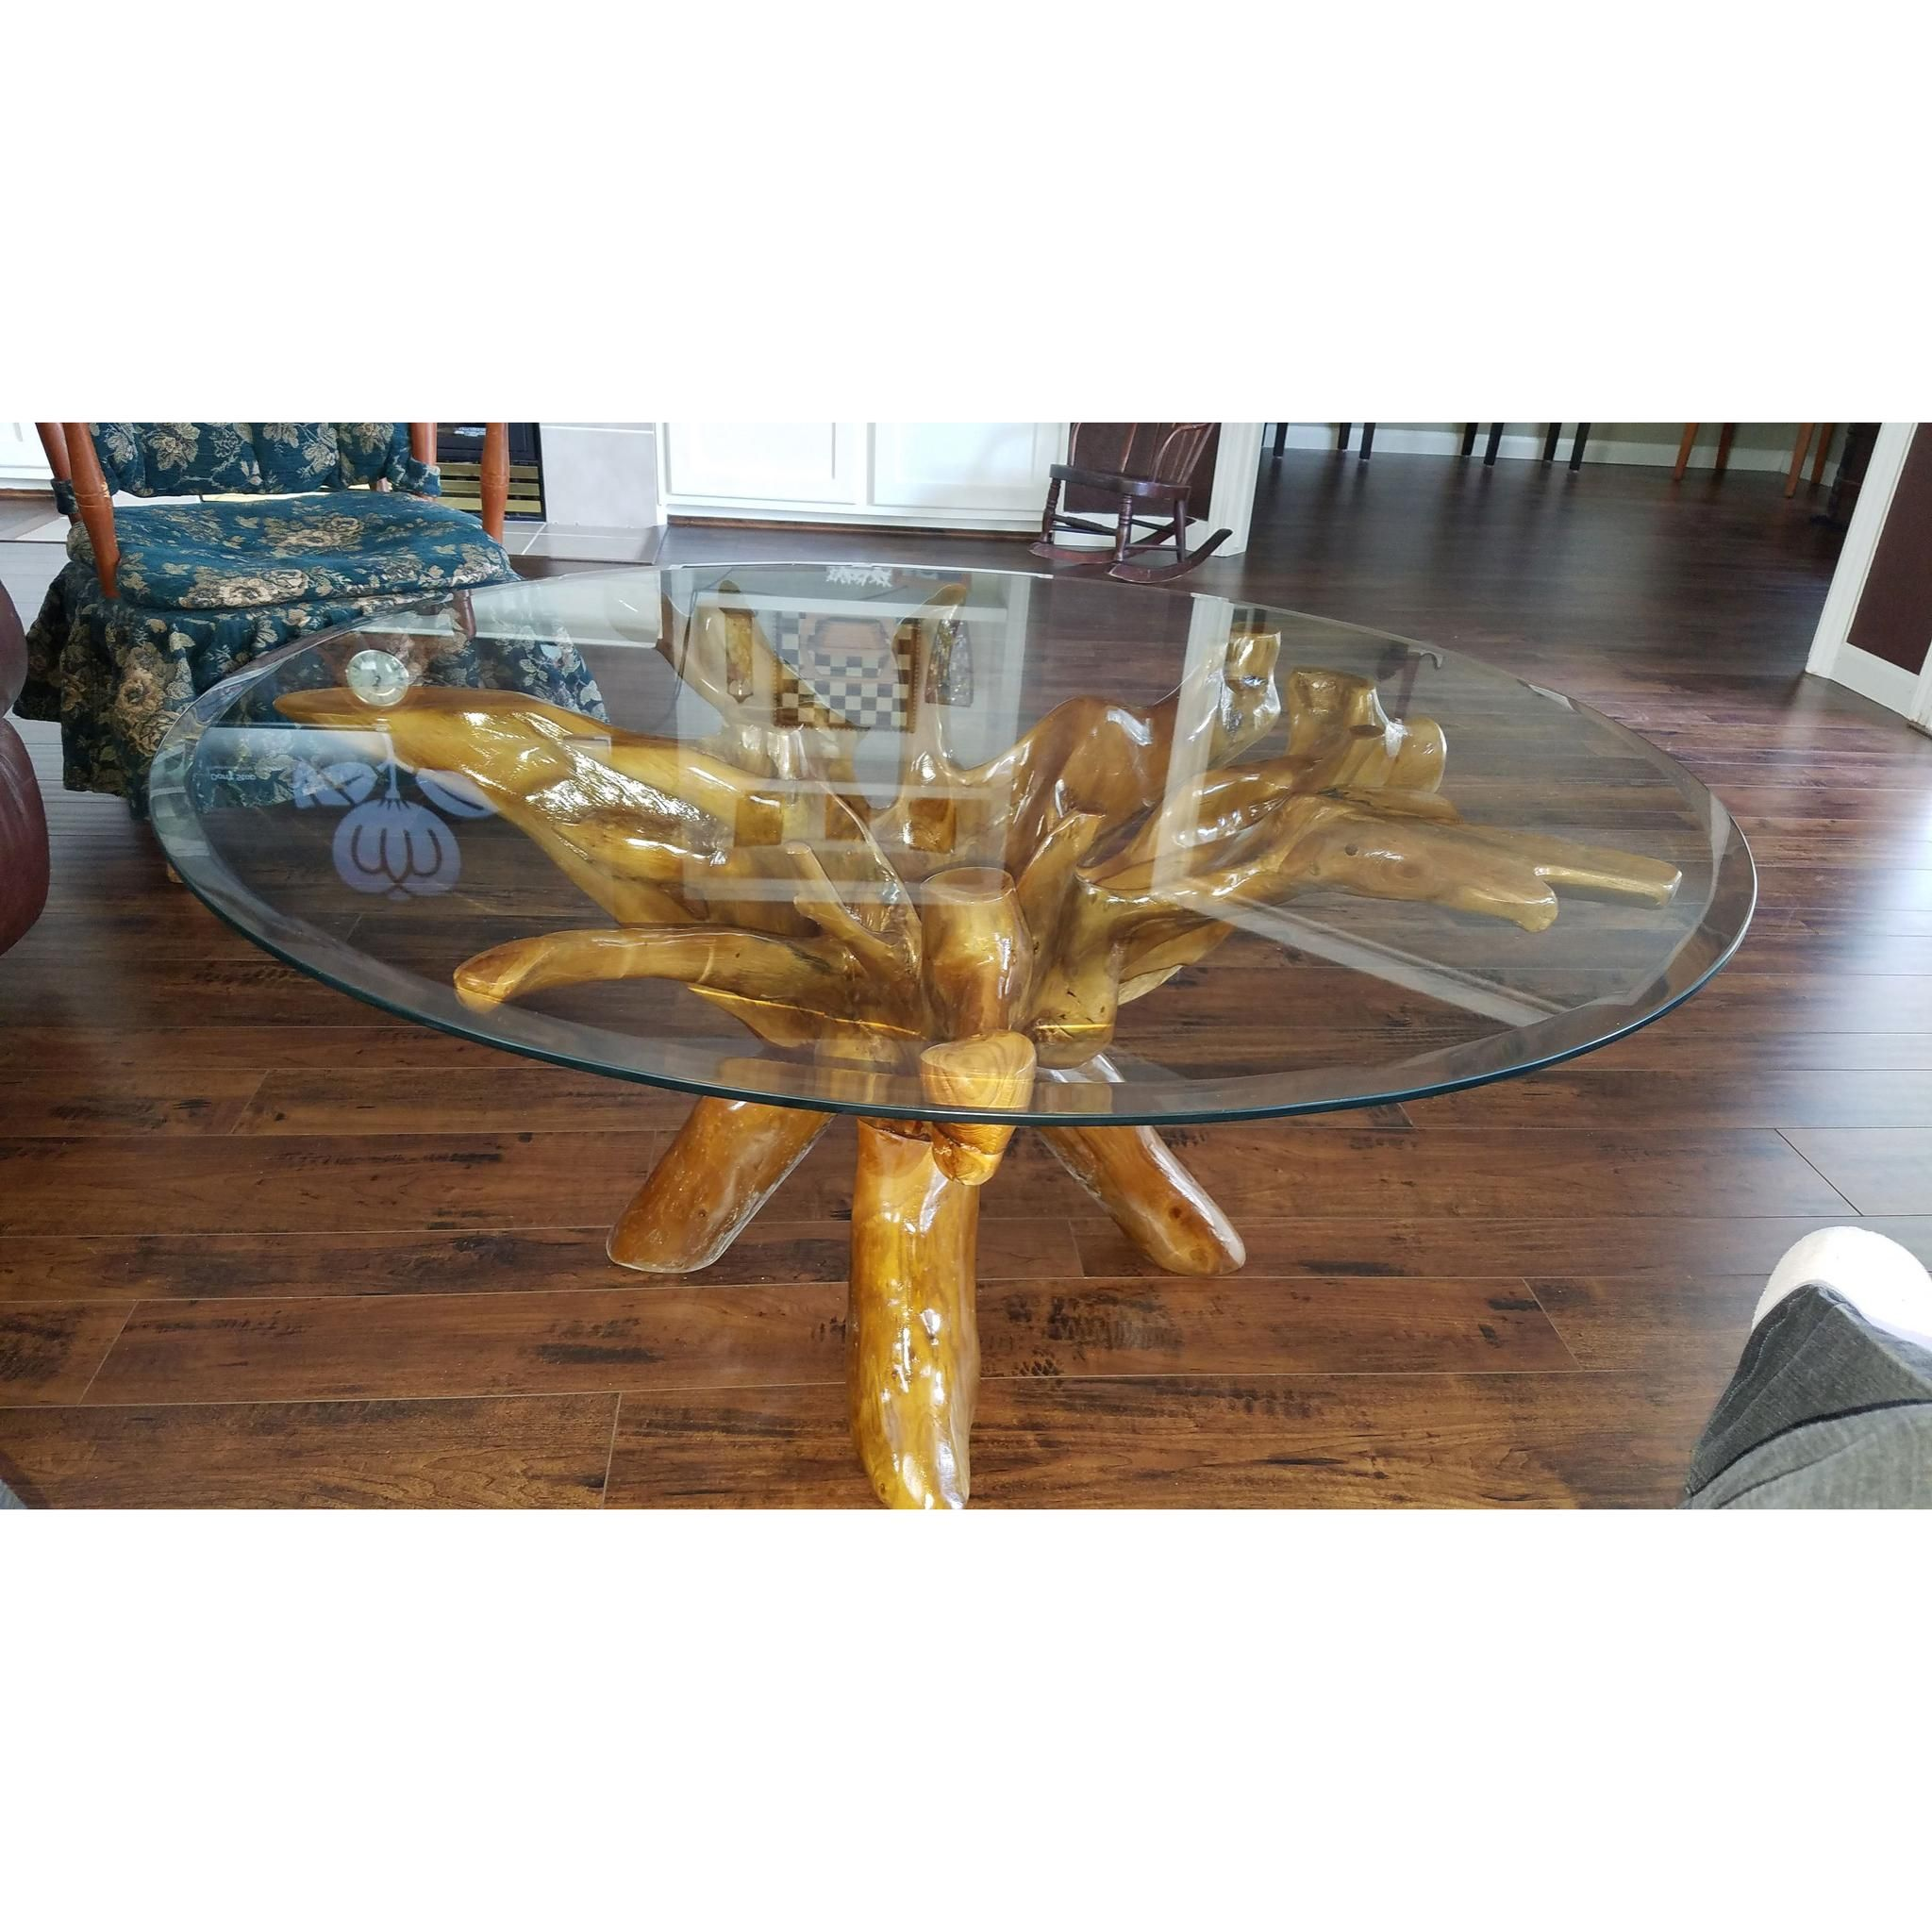 Teak Wood Root Coffee Table Including 43 Inch Round Glass ...